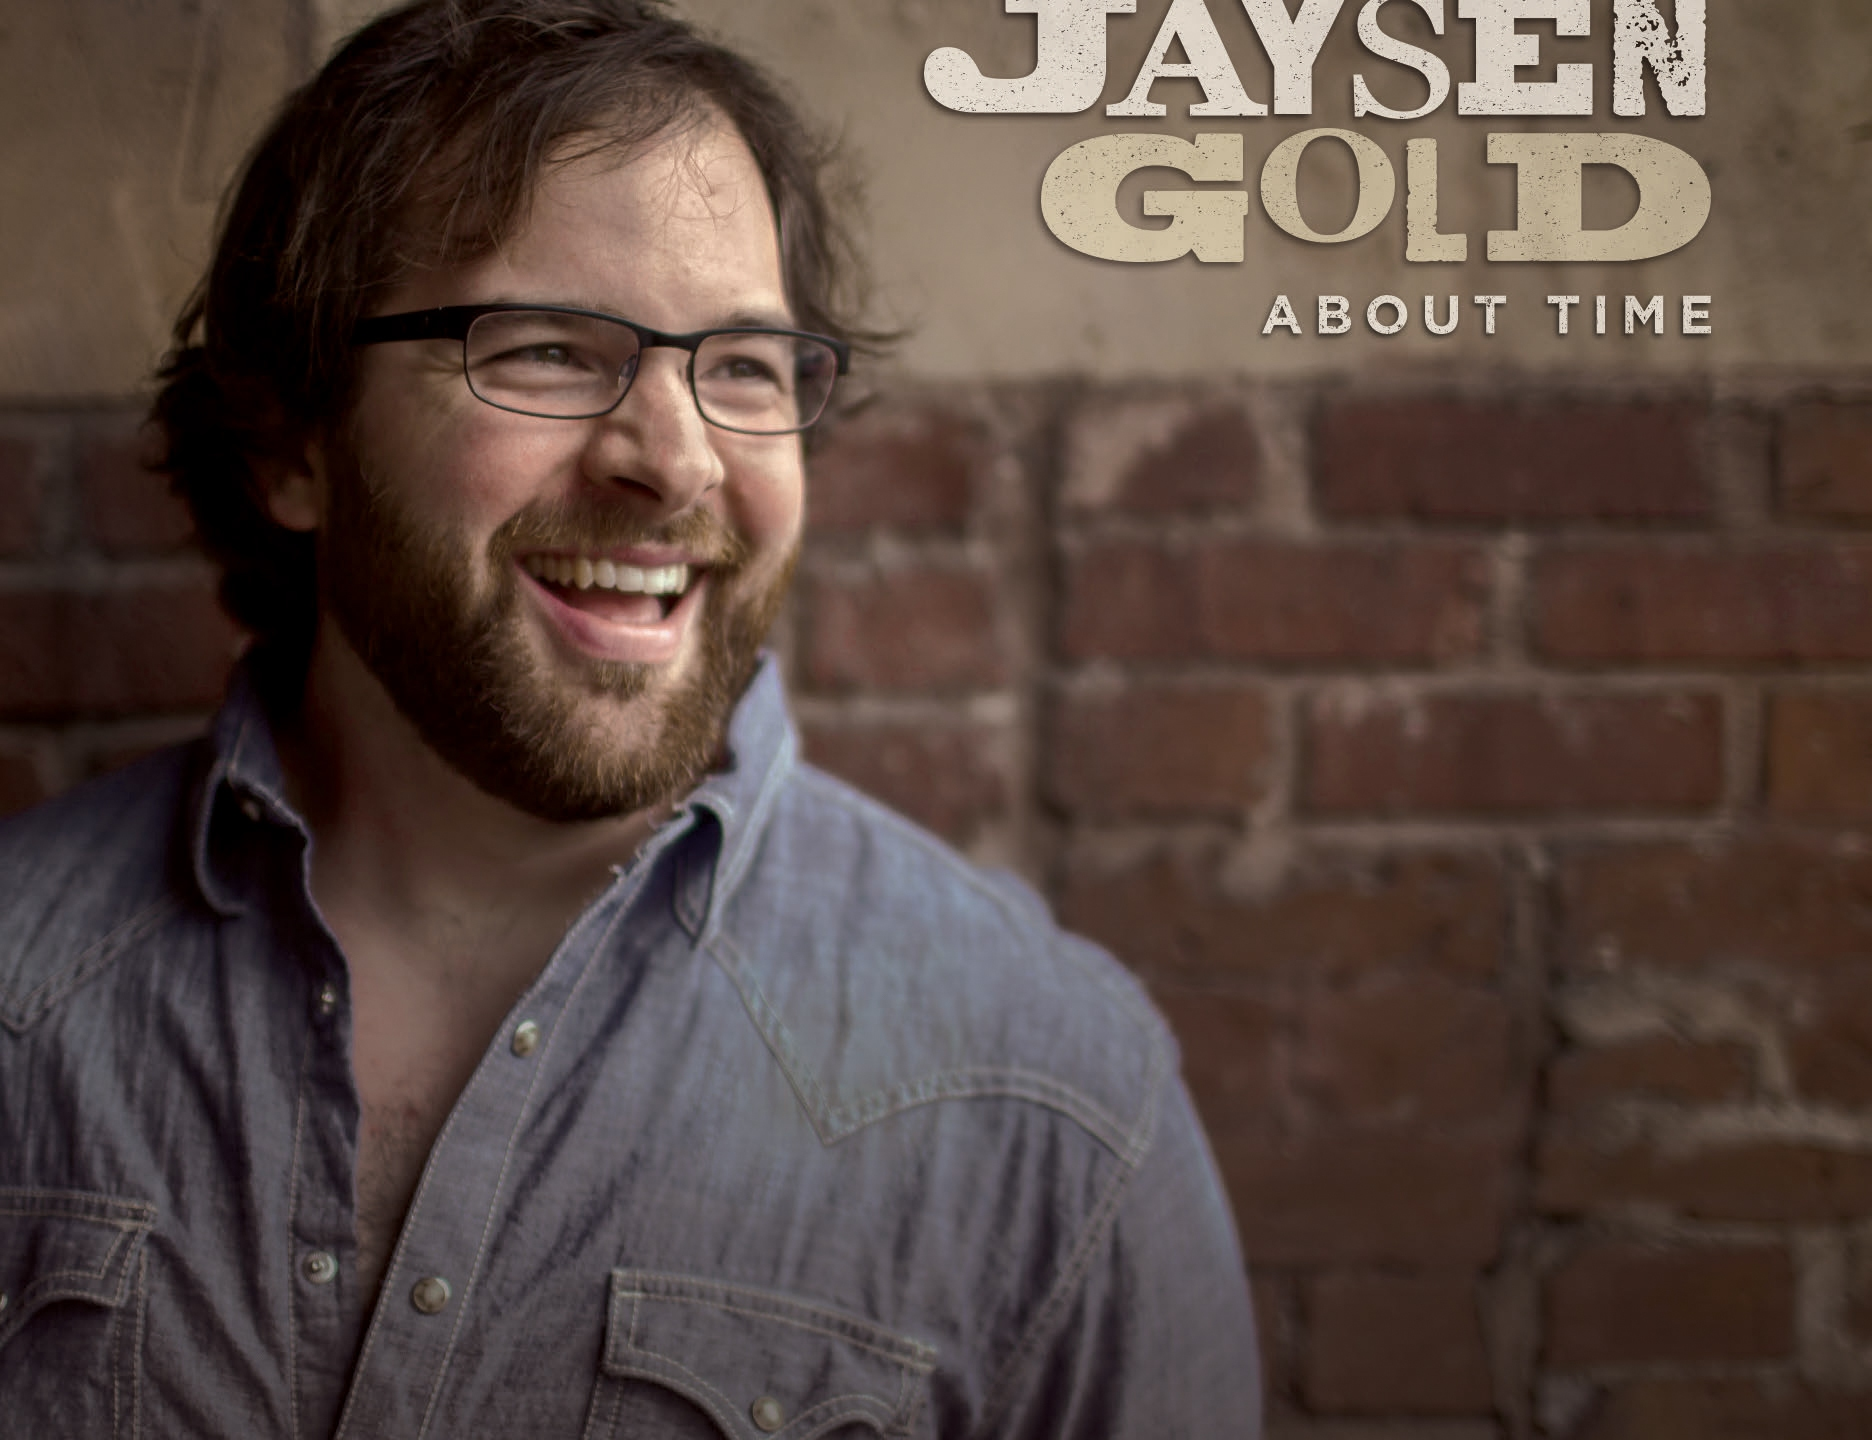 Jaysen Gold - About Time EP_Page_1_1459906009303.jpg